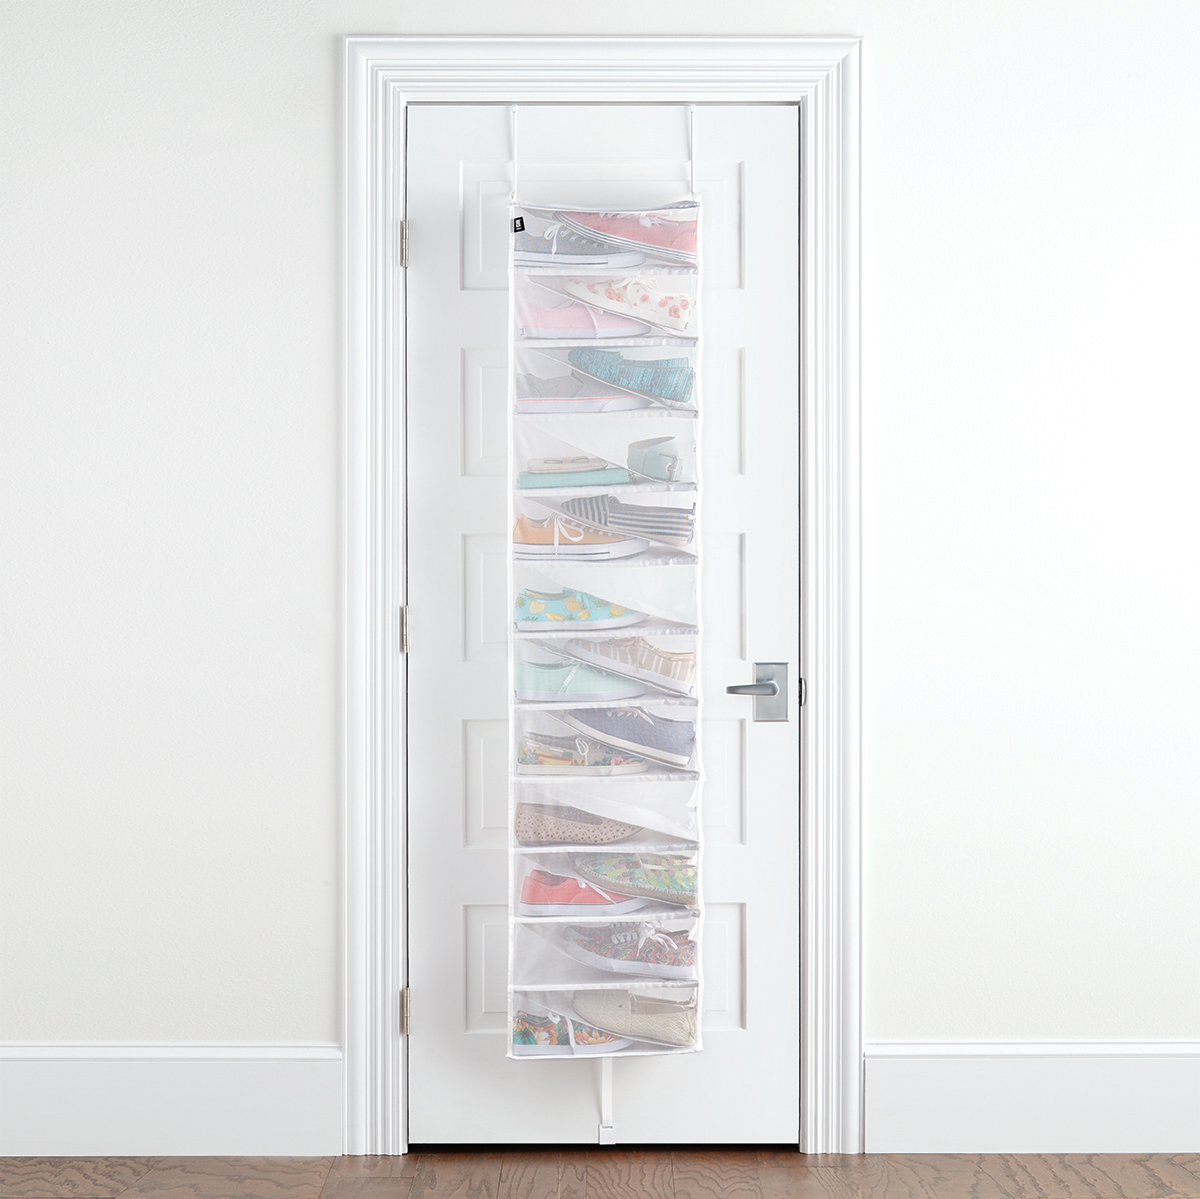 Scala Overdoor Shoe Organizer by Umbra